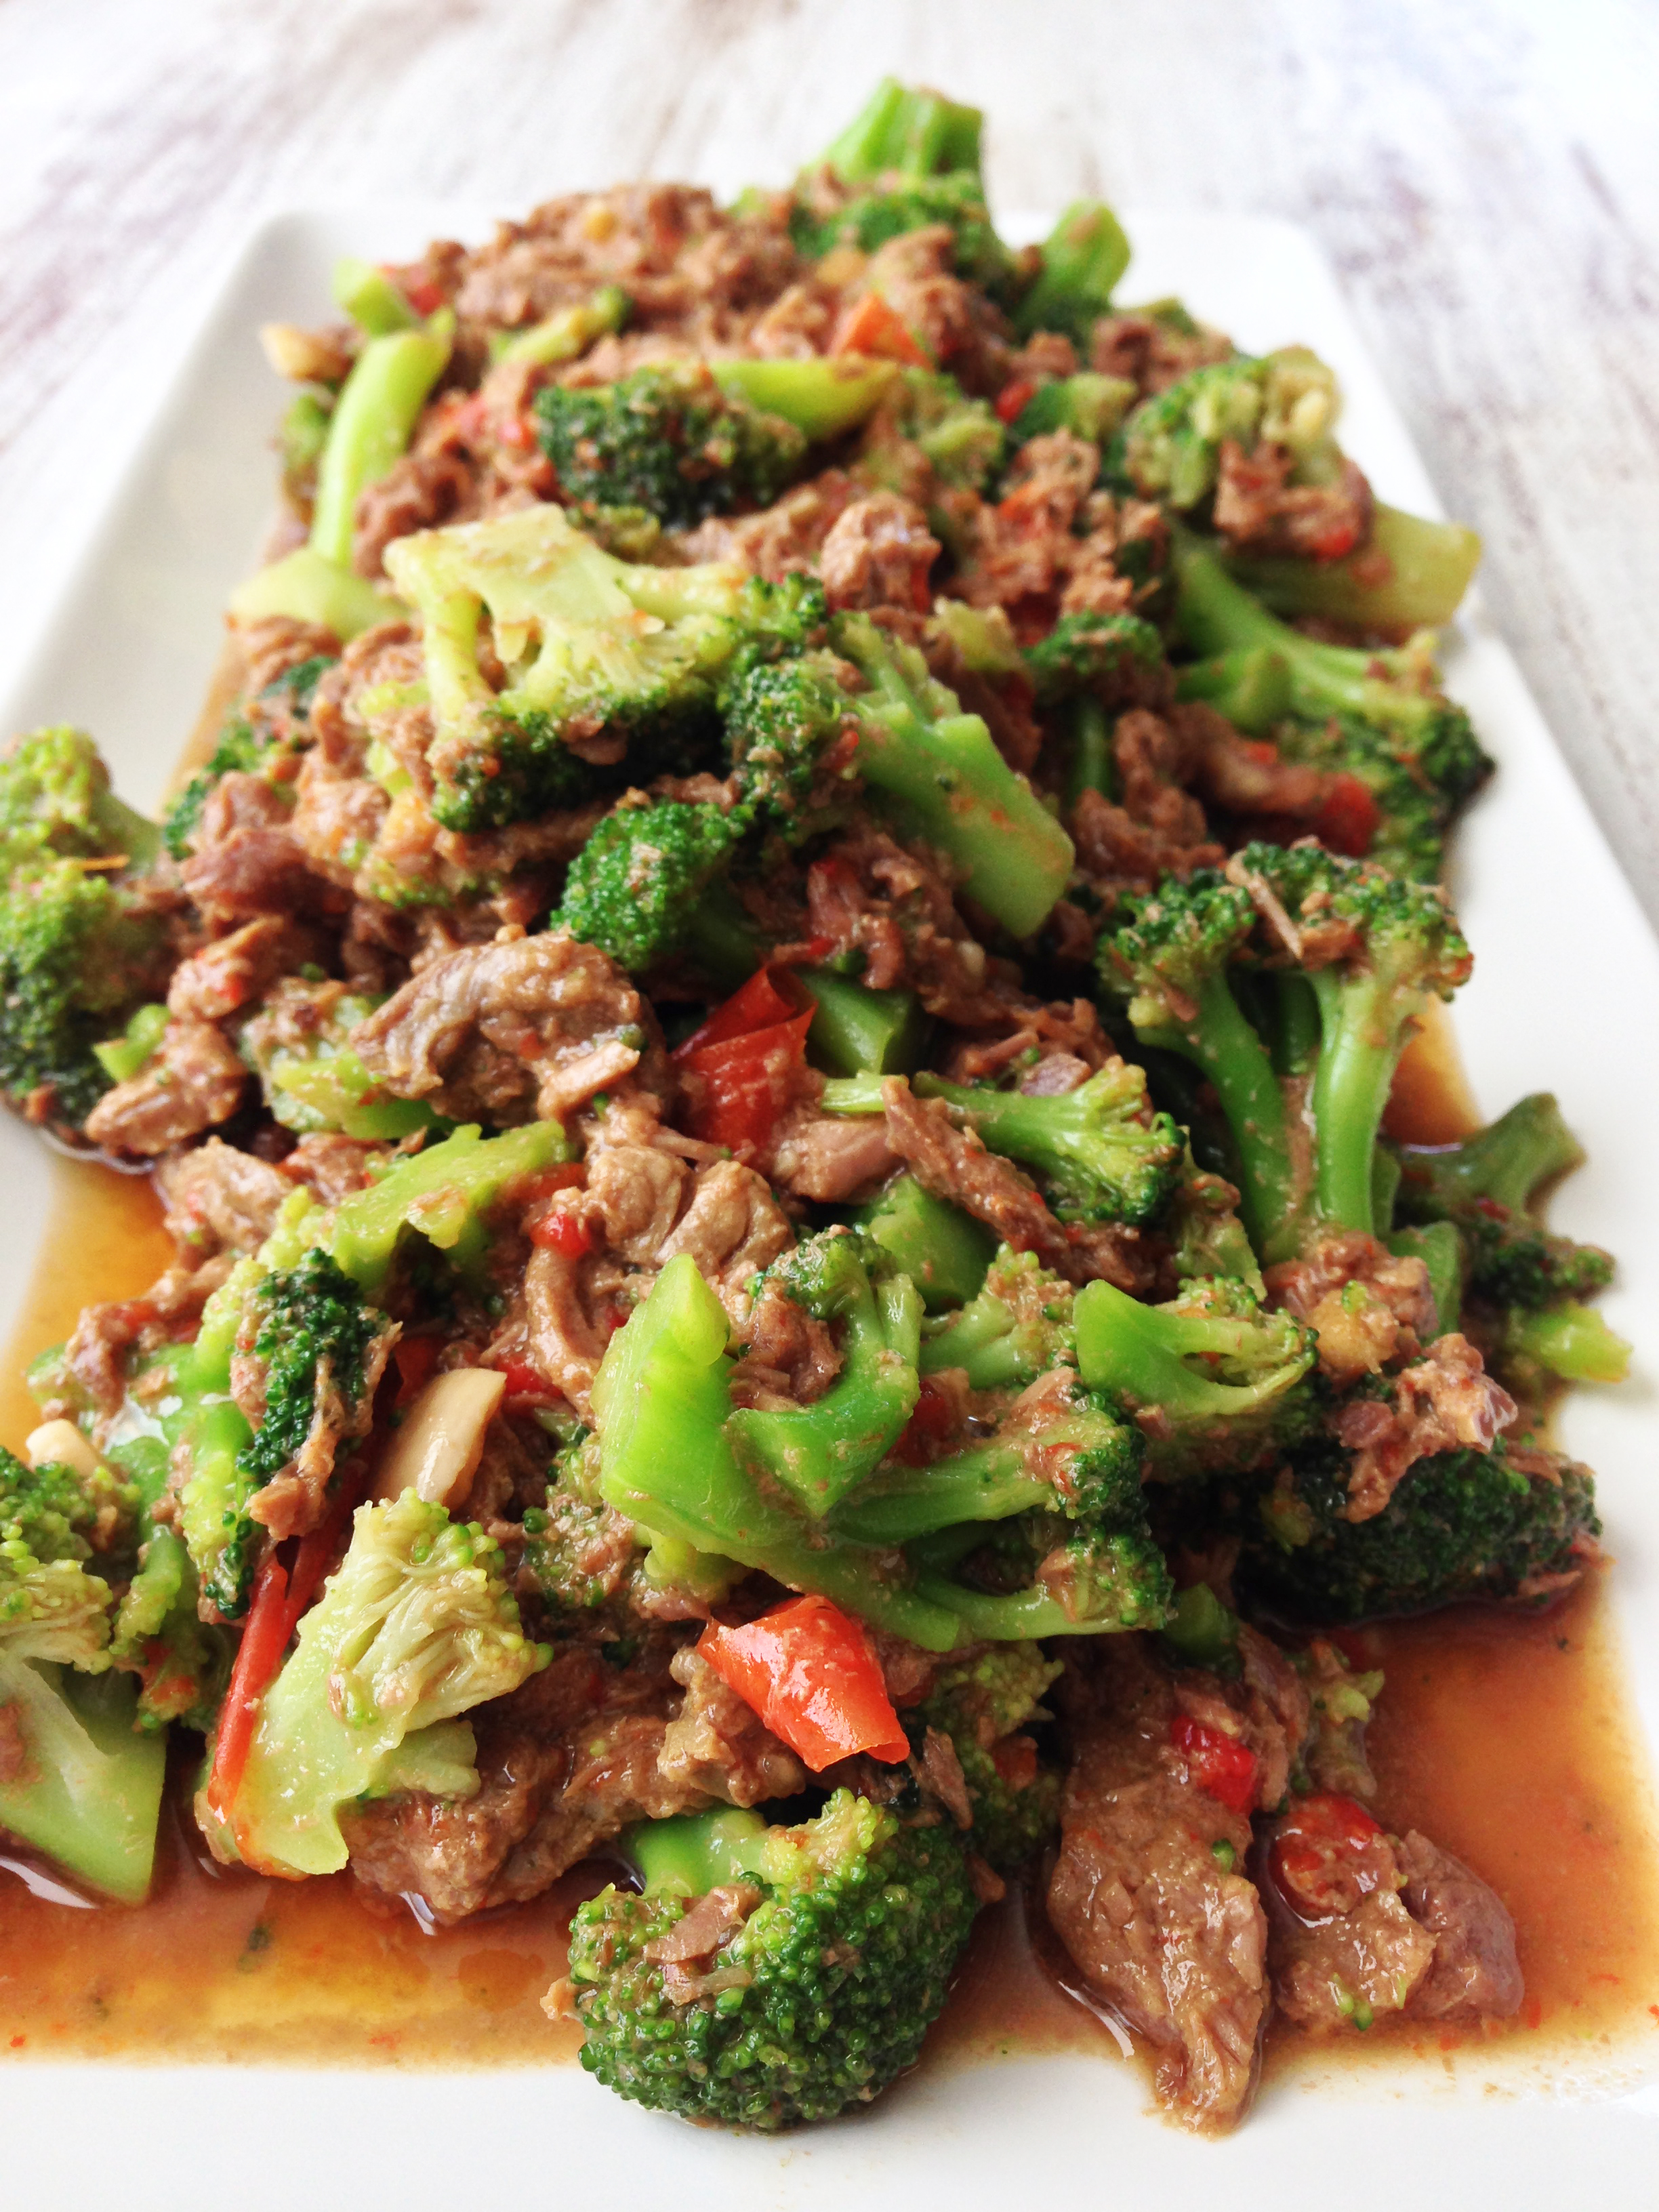 Healthy Crock Pot Beef & Broccoli